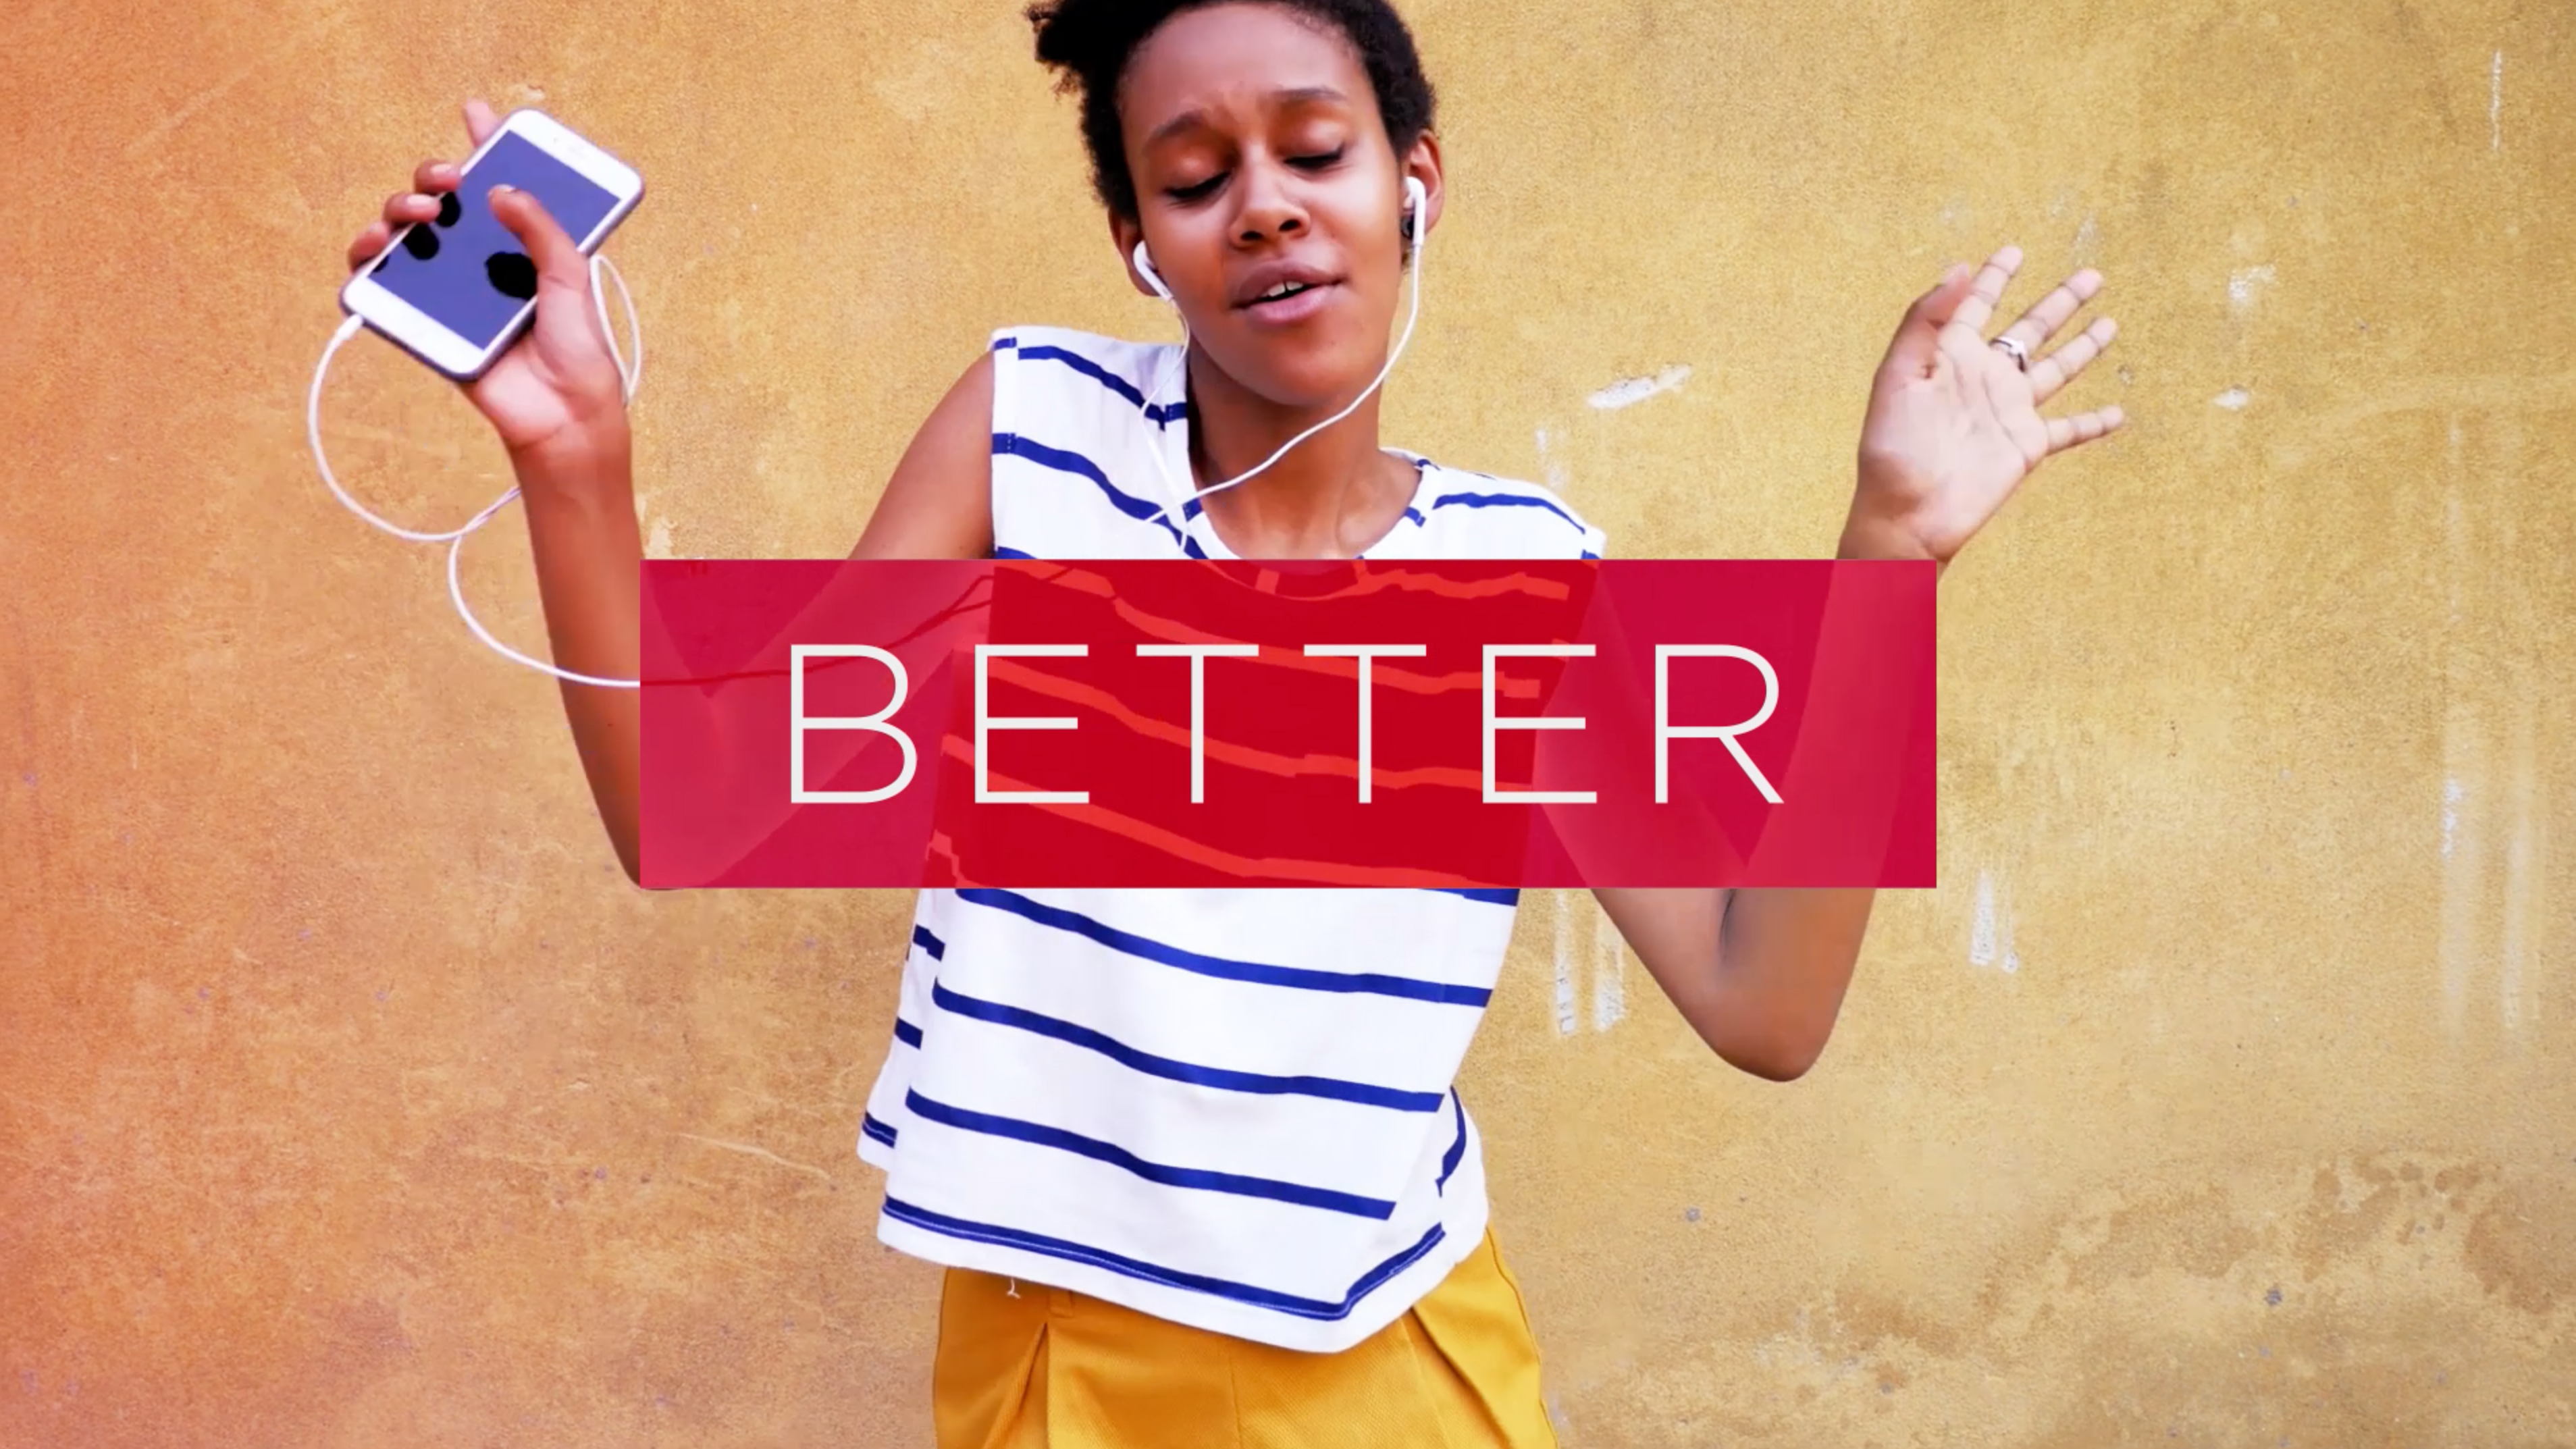 """Women with headphones and smartphone dancing with the word """"better"""" imposed over image"""